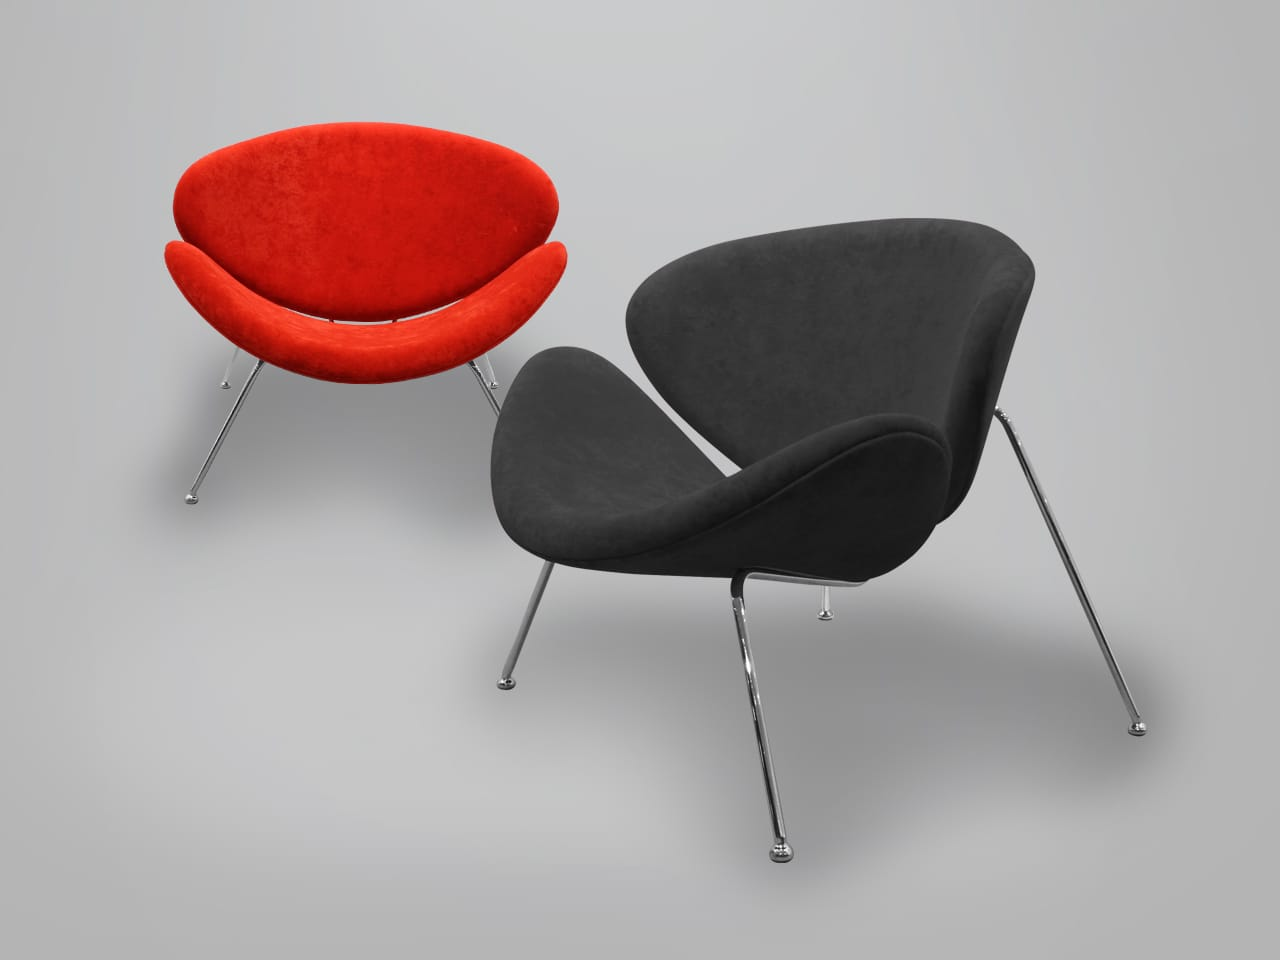 Lip Chair Lips Lounger Comfort Design The Chair And Table People